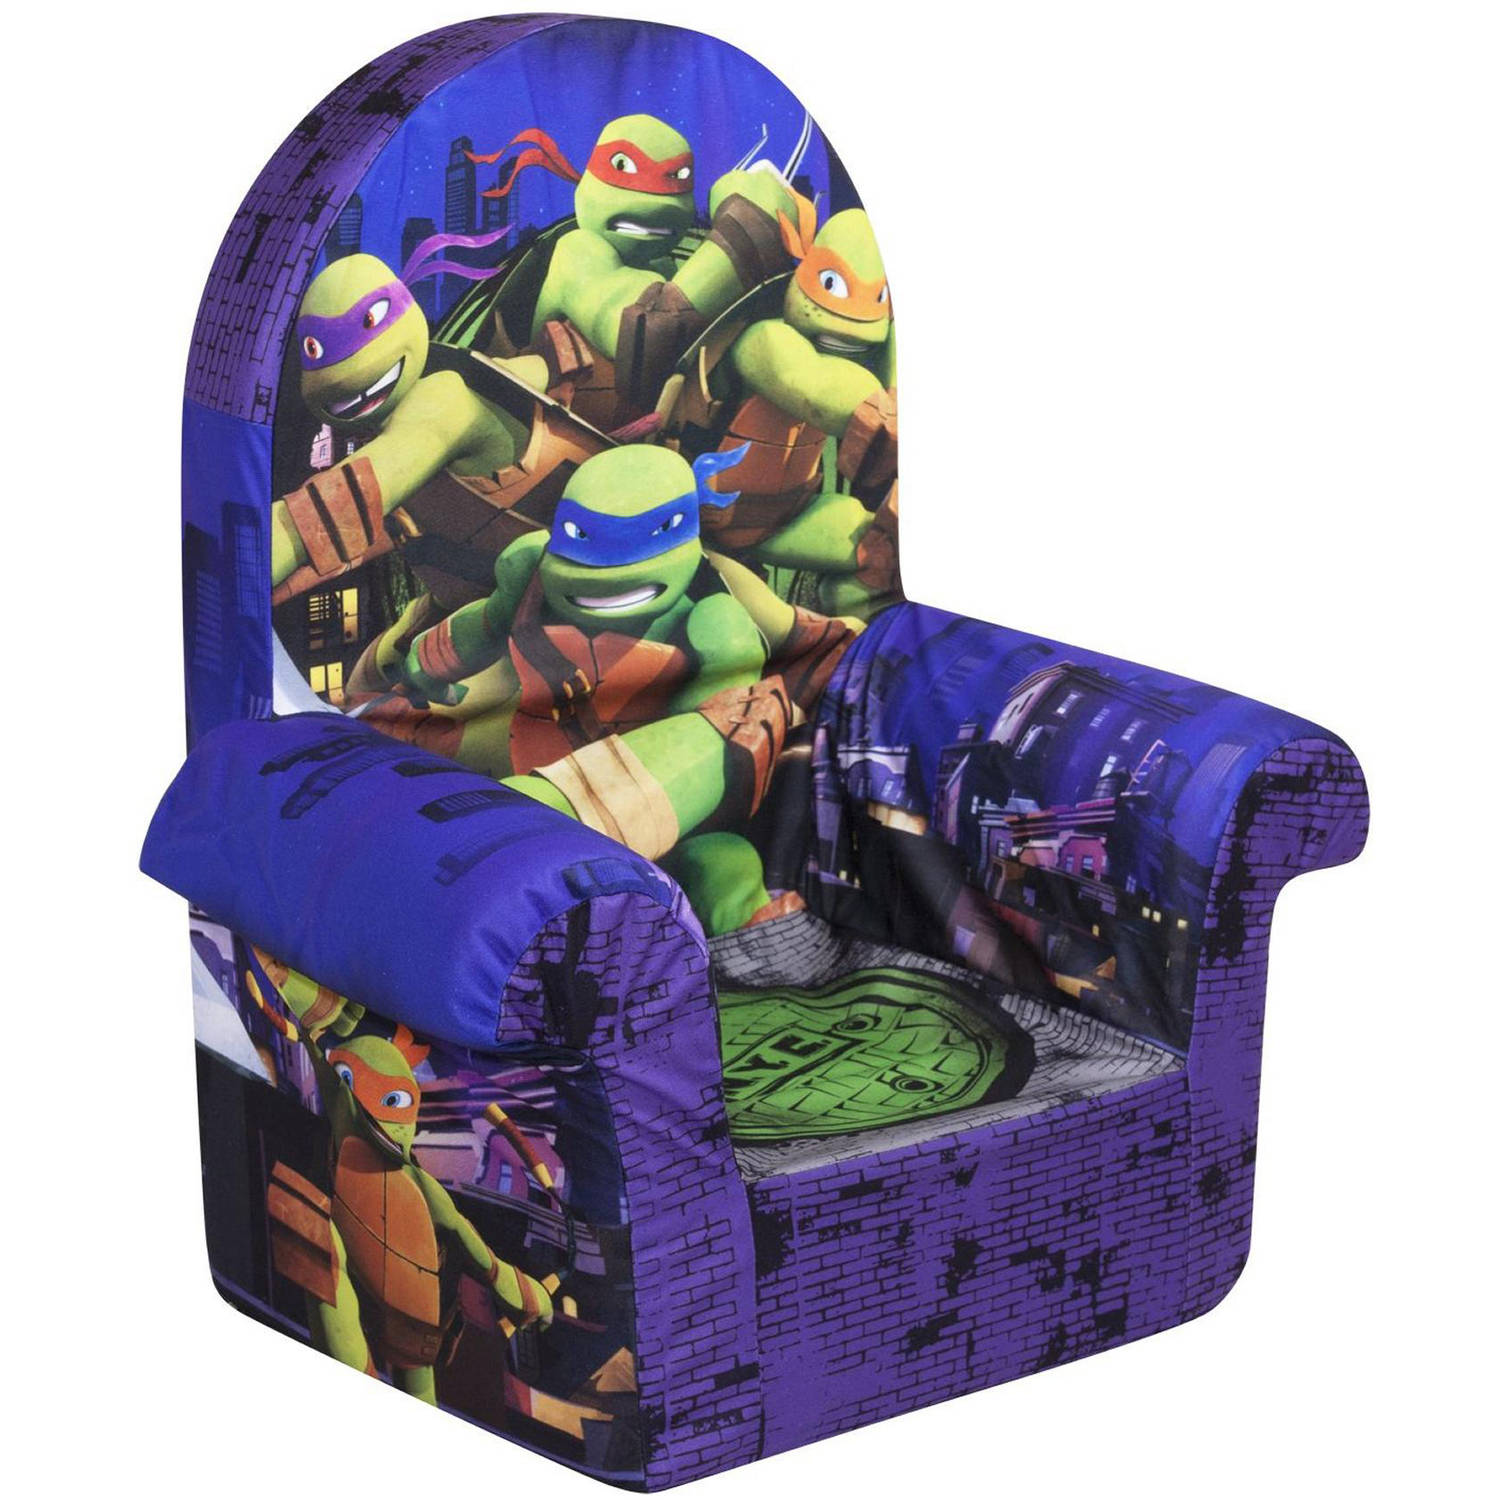 Ninja Turtle Bedroom Furniture 3 Bedroom Homes For Sale